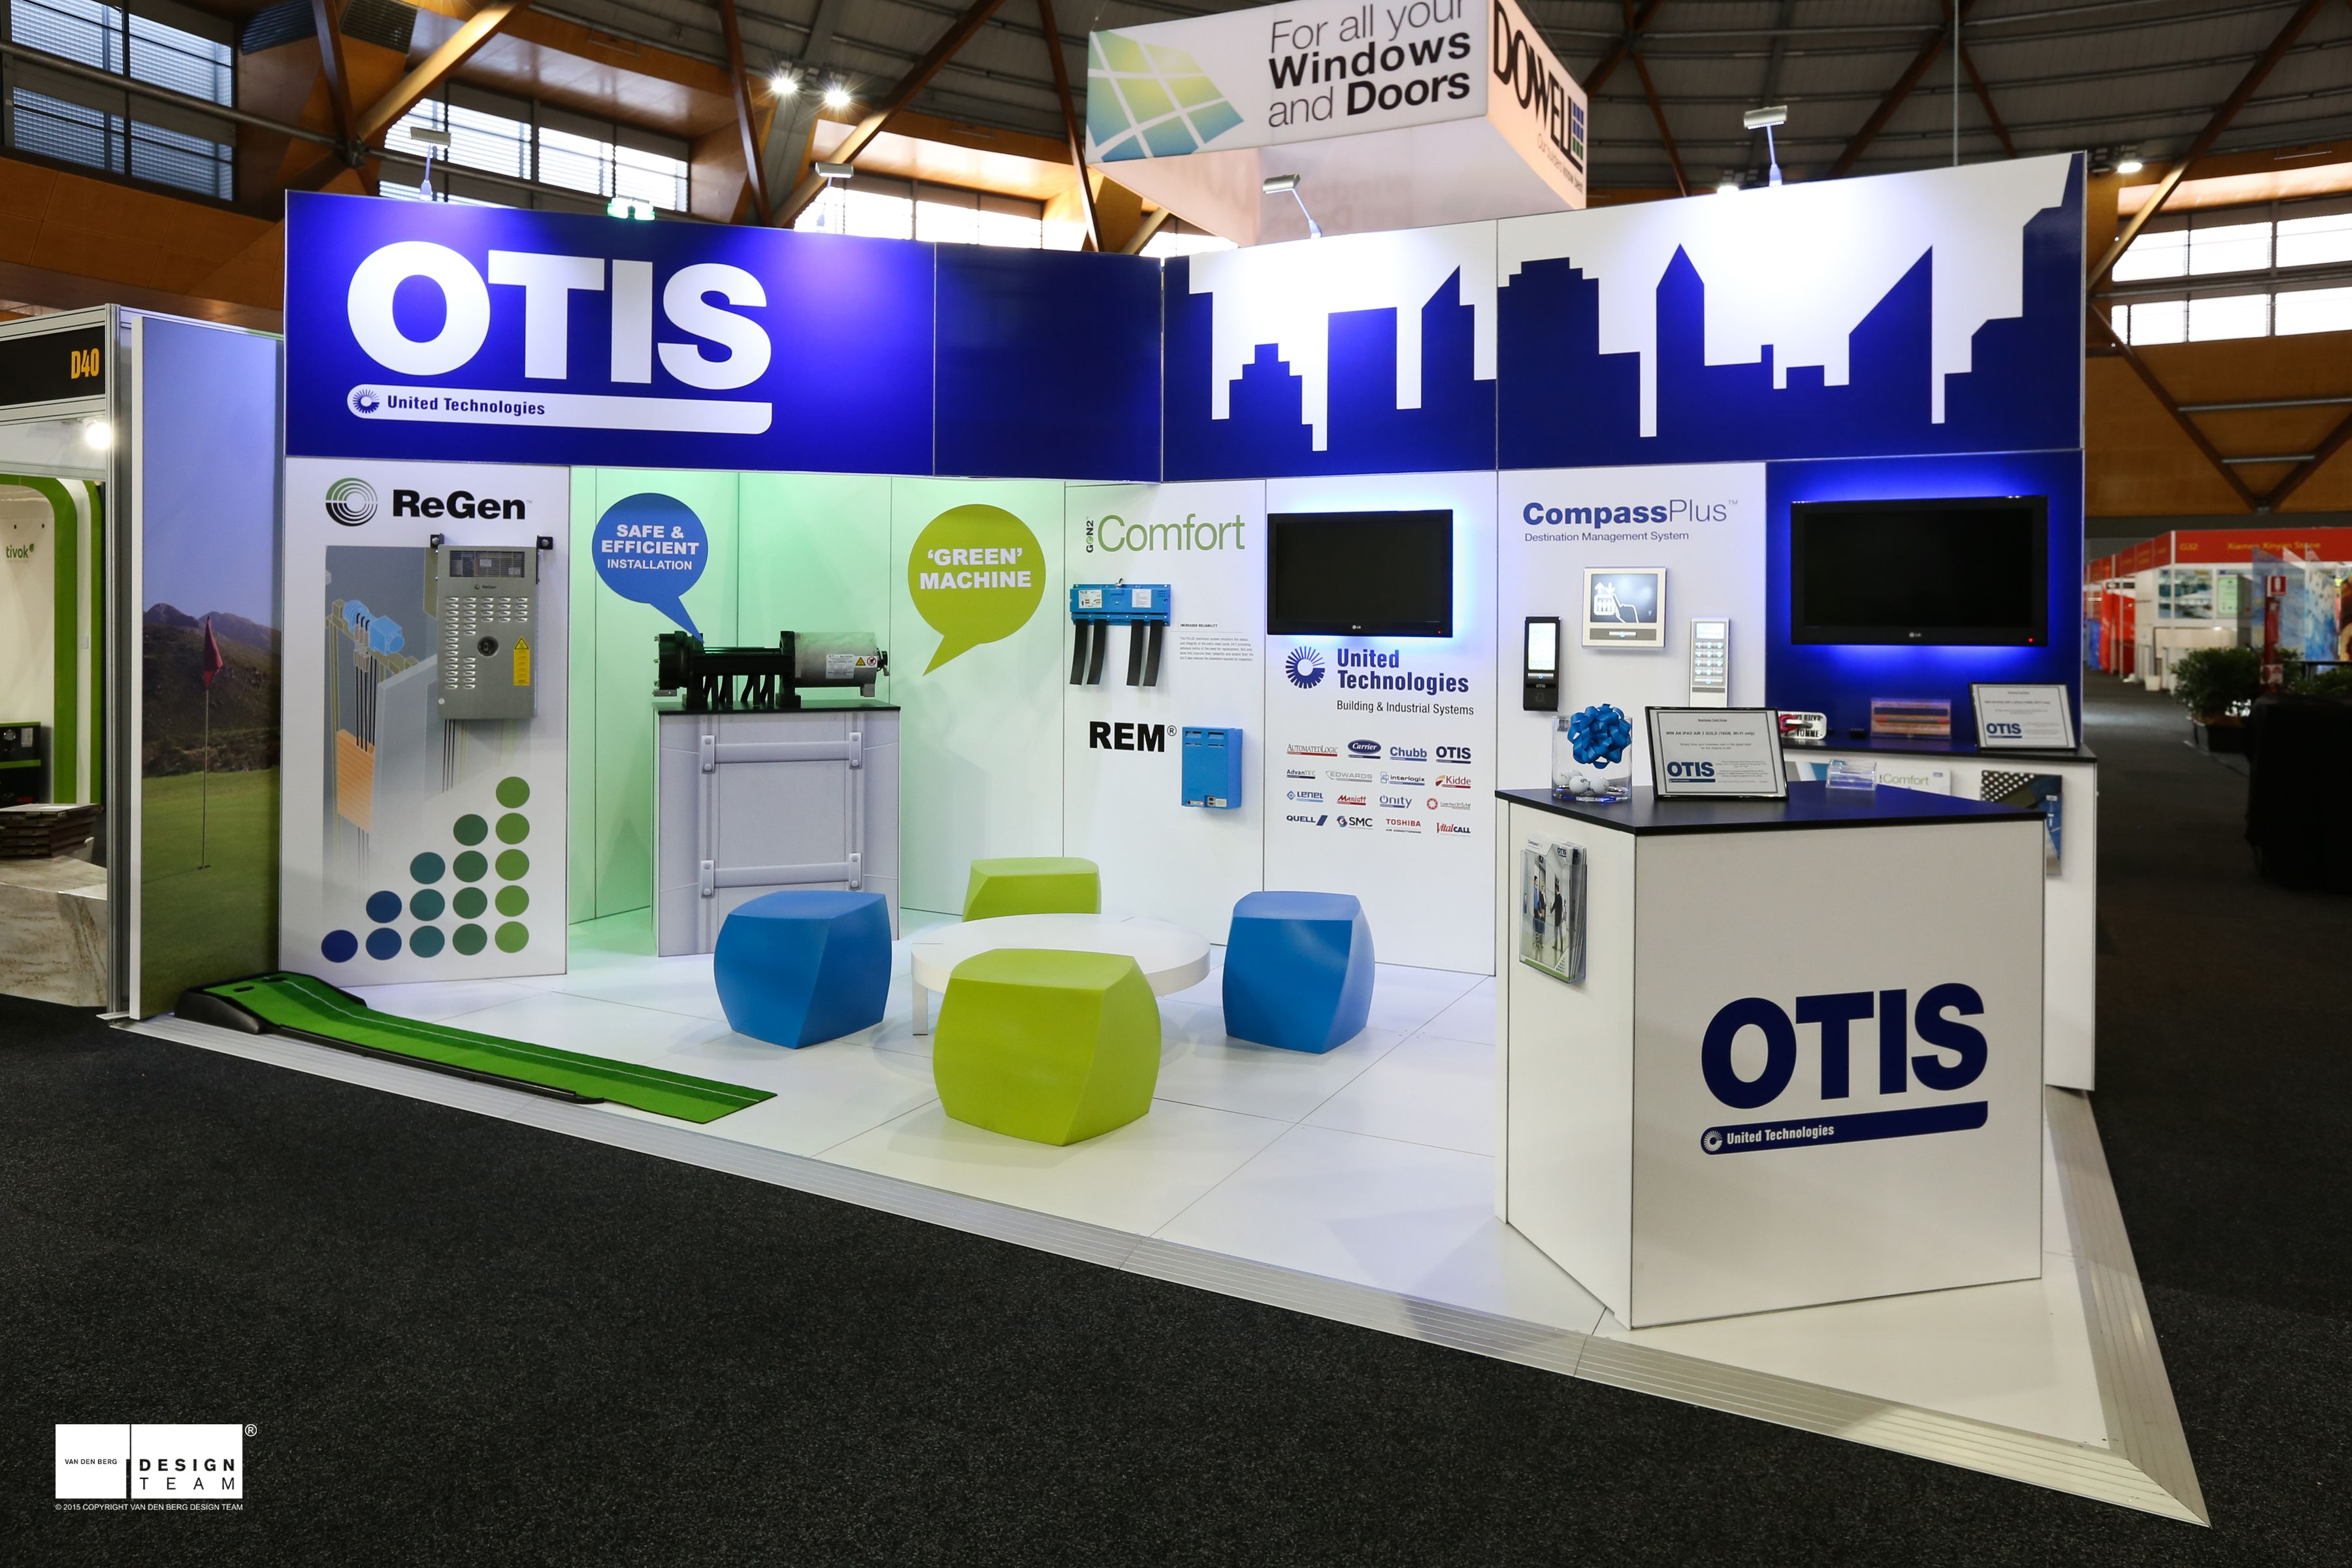 OTIS LIFTS @ DESIGNBUILD Otis introduces their wide range of people moving technology to building planners and designers